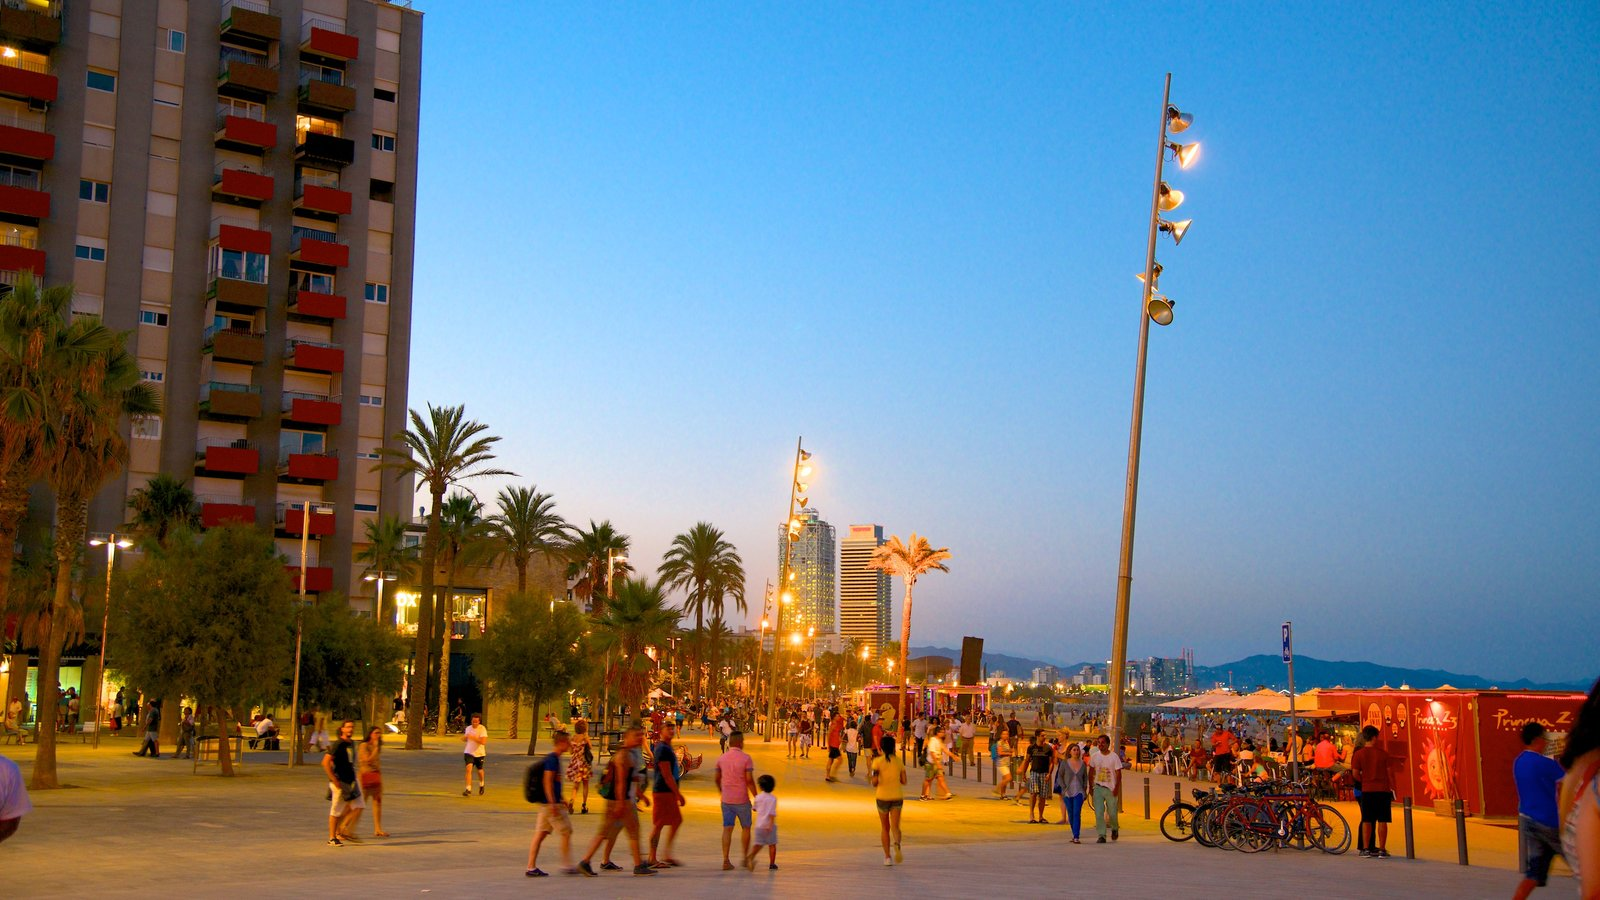 Barceloneta Beach which includes street scenes, a city and night scenes